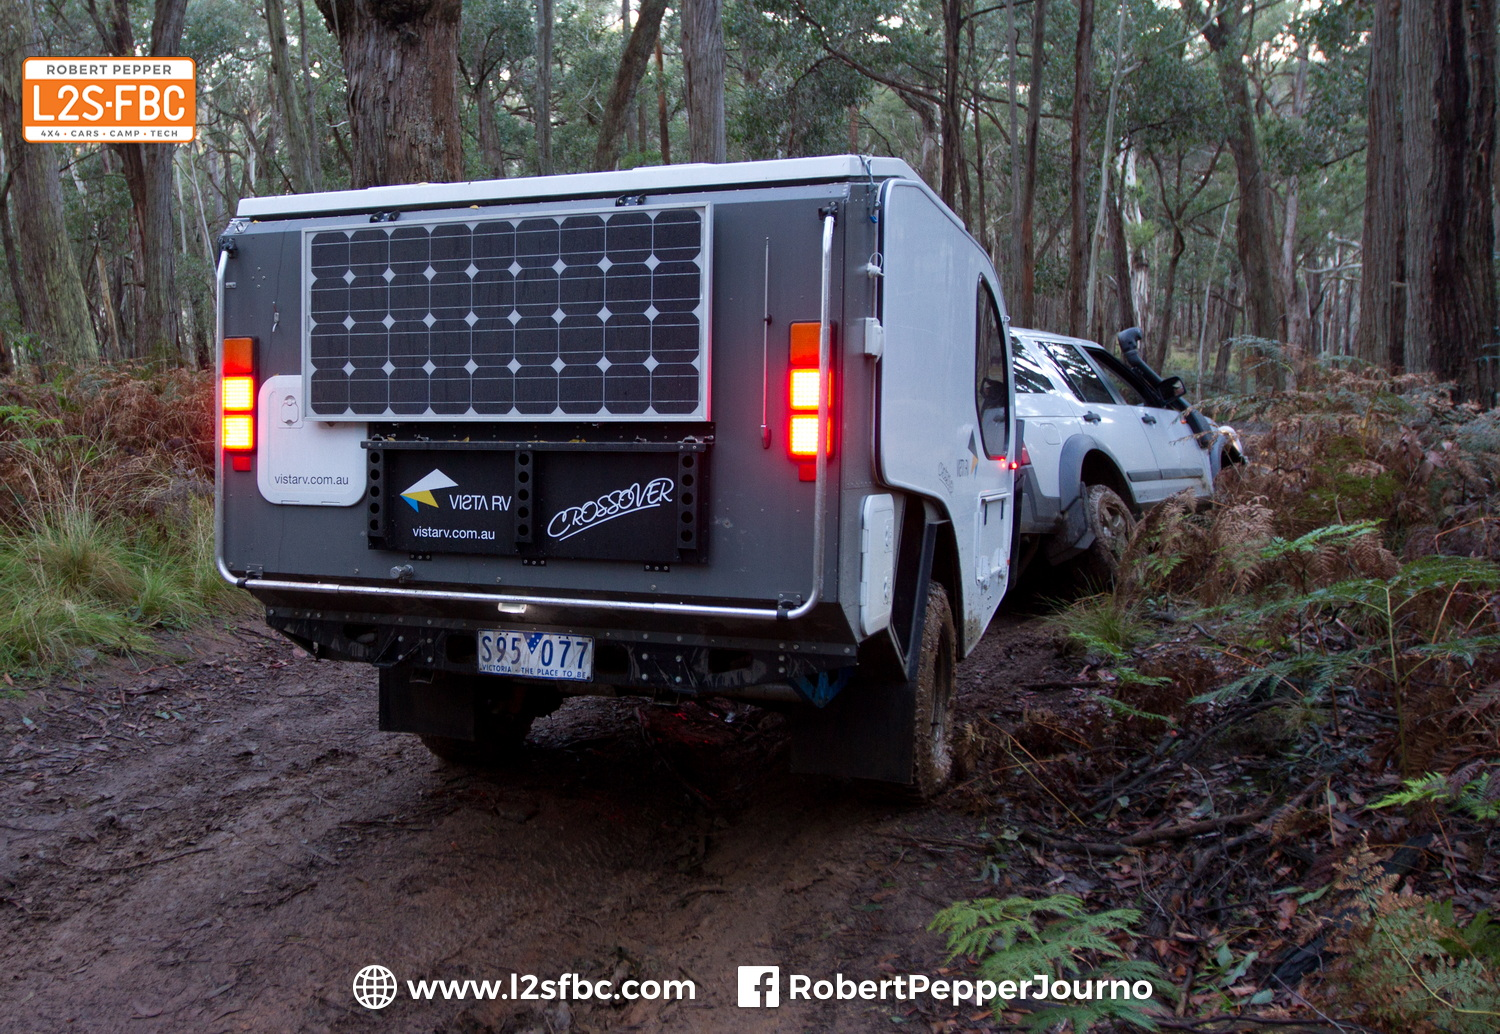 Should I take a camper trailer into the Victorian High Country?